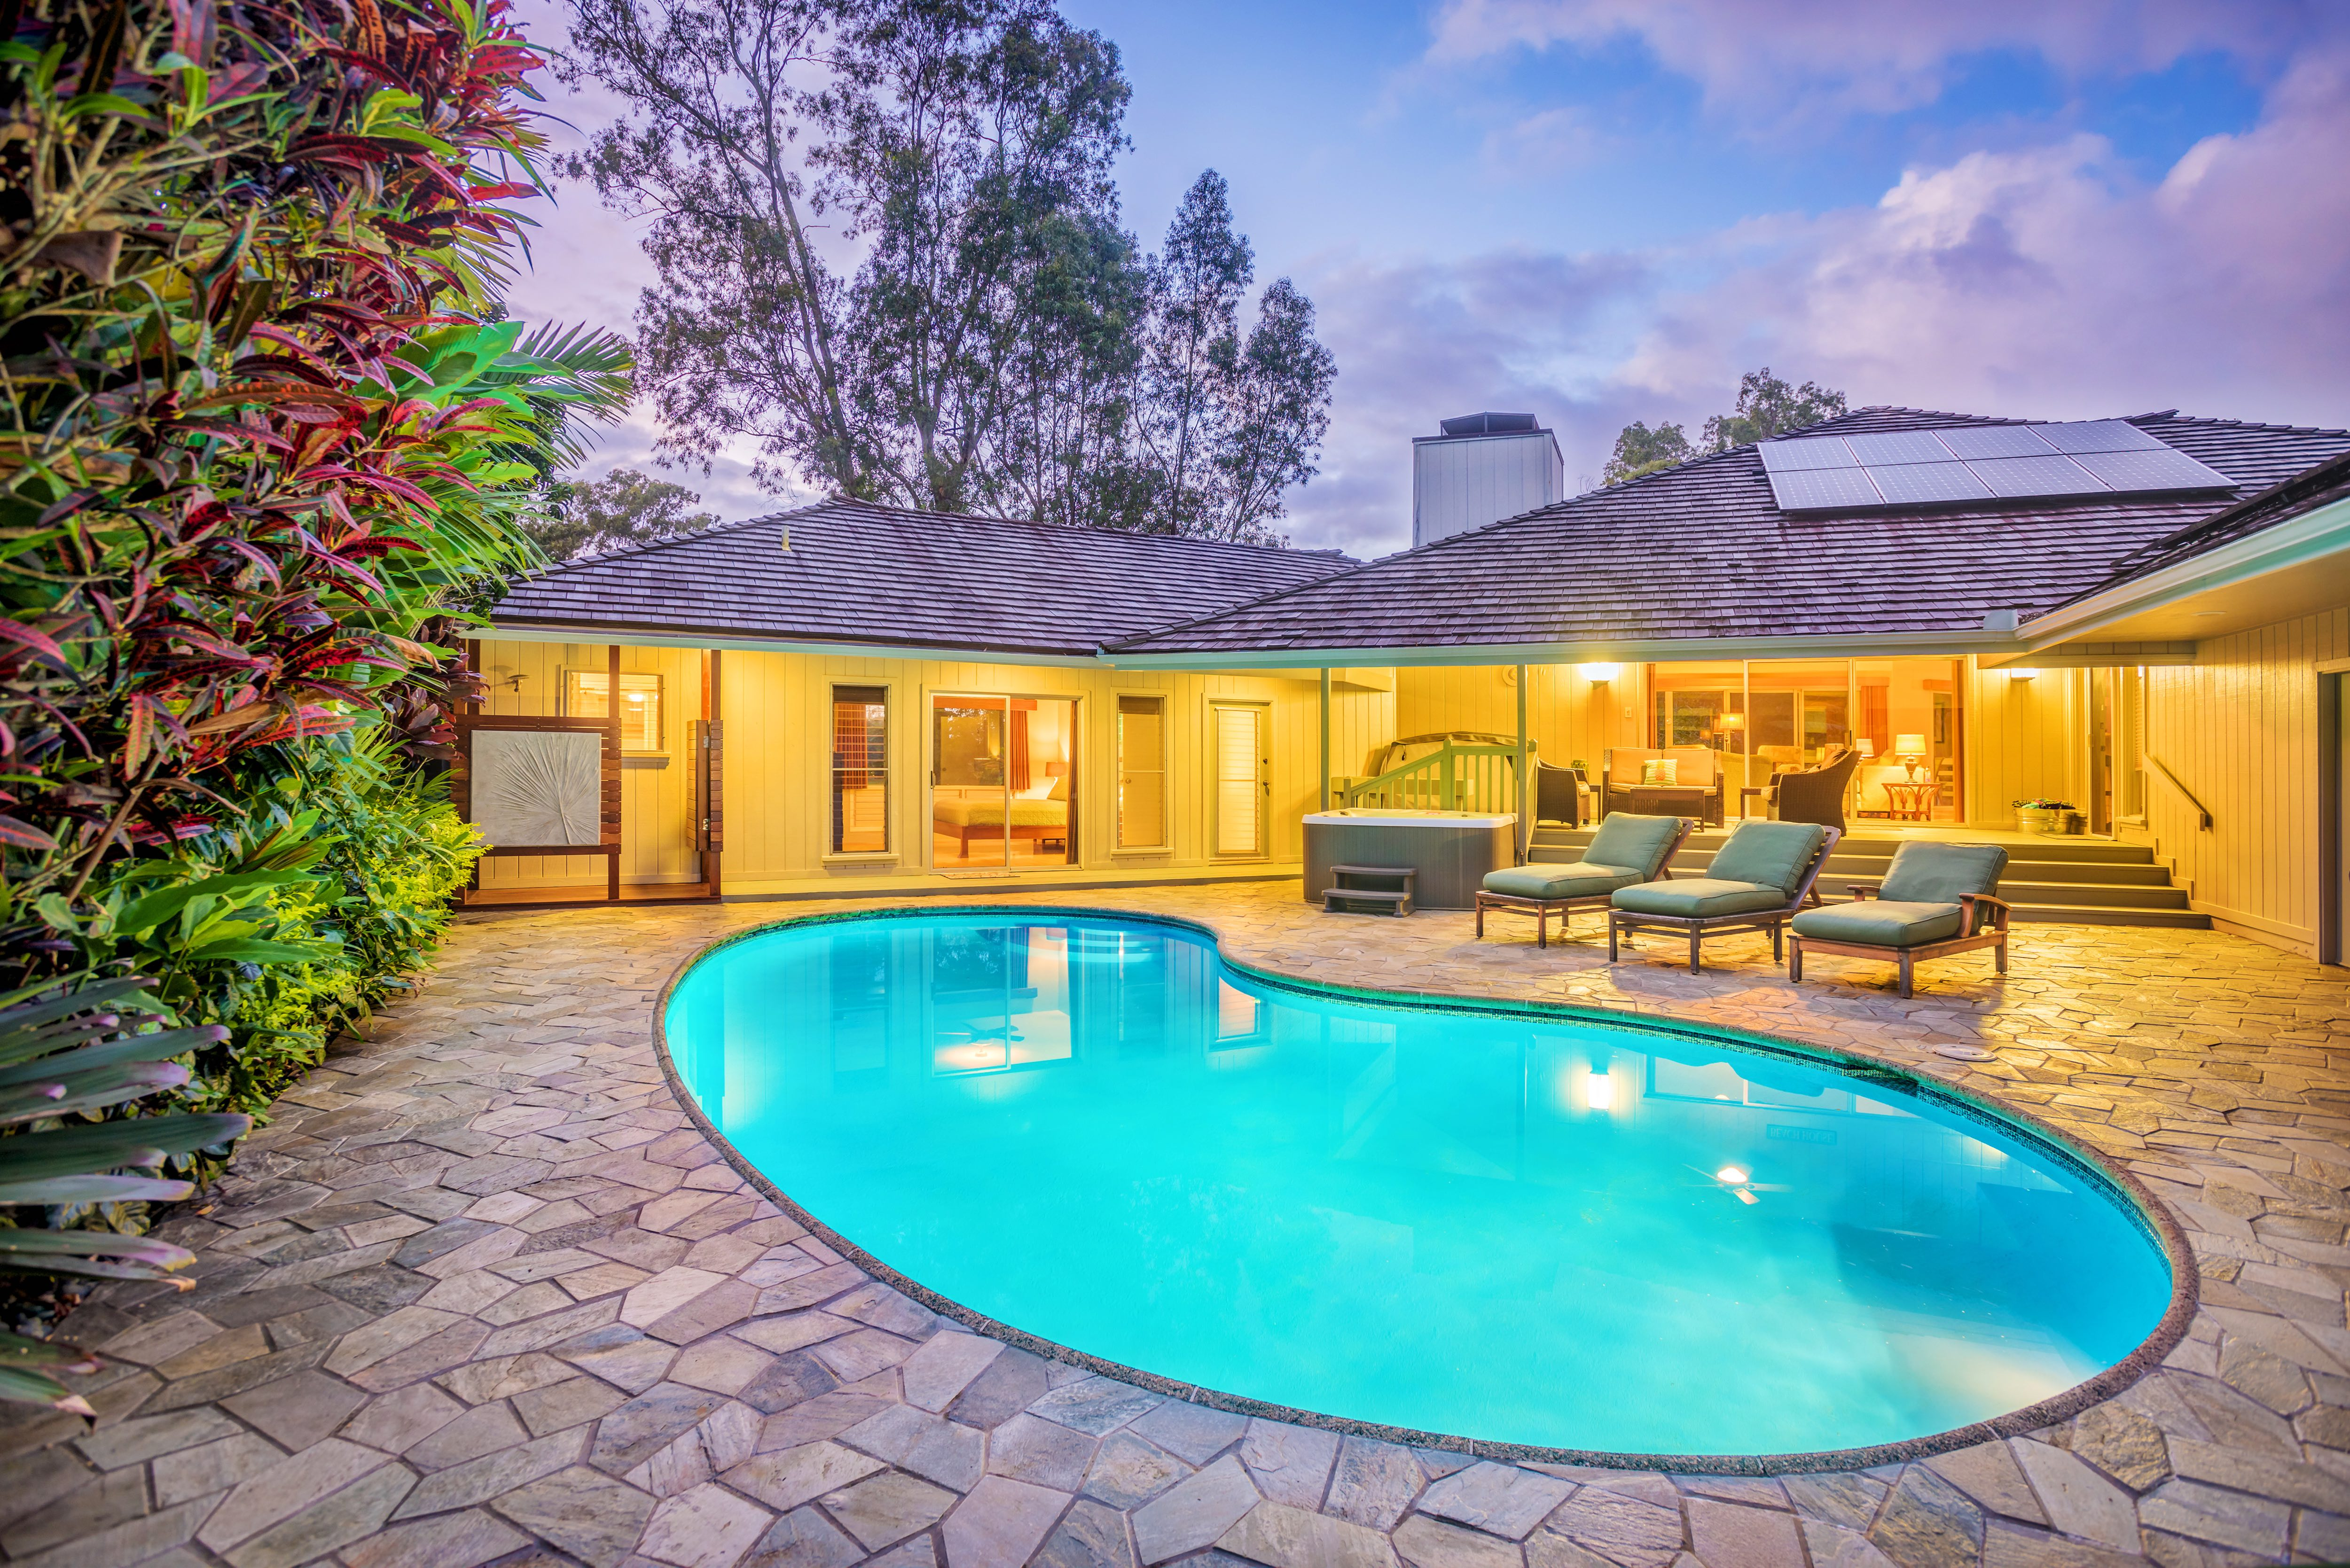 Princeville Kauai Vacation Rental The Kealohi Wai Princeville Boasts Panoramic Lake And Golf Course Views This Private And Luxurious 6 Bedroom Home In